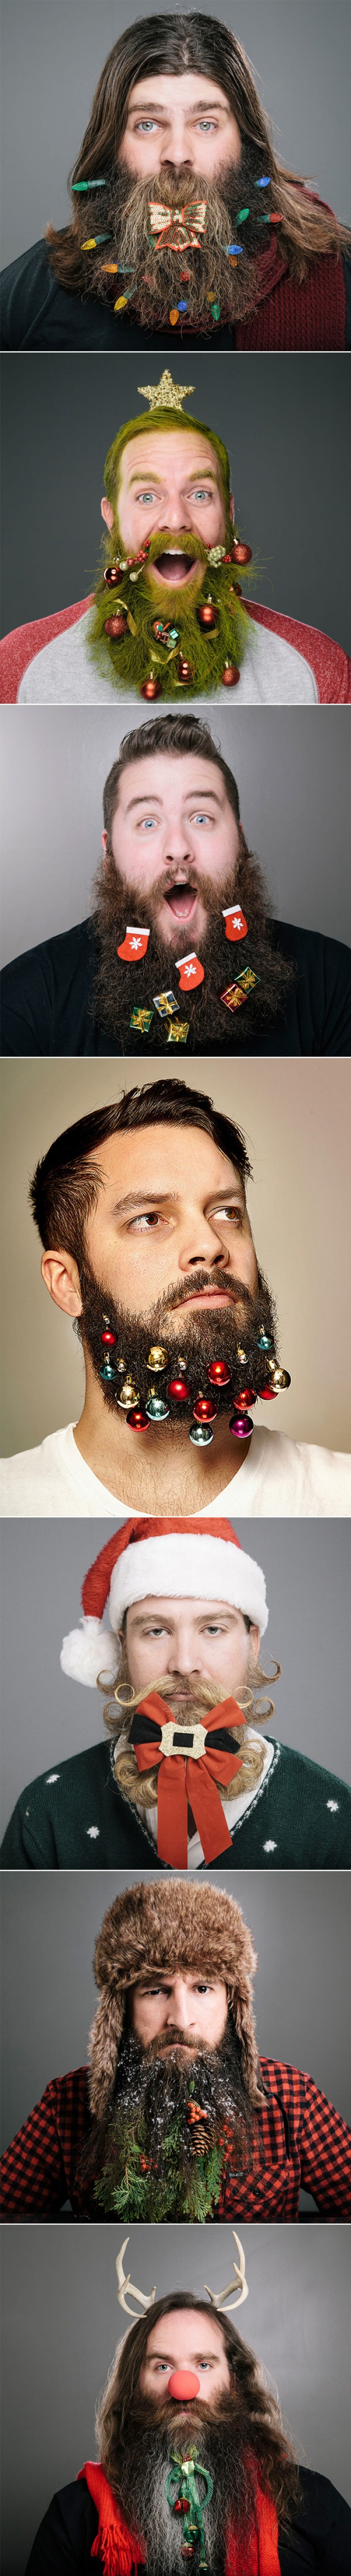 How to make your beard more seasonal